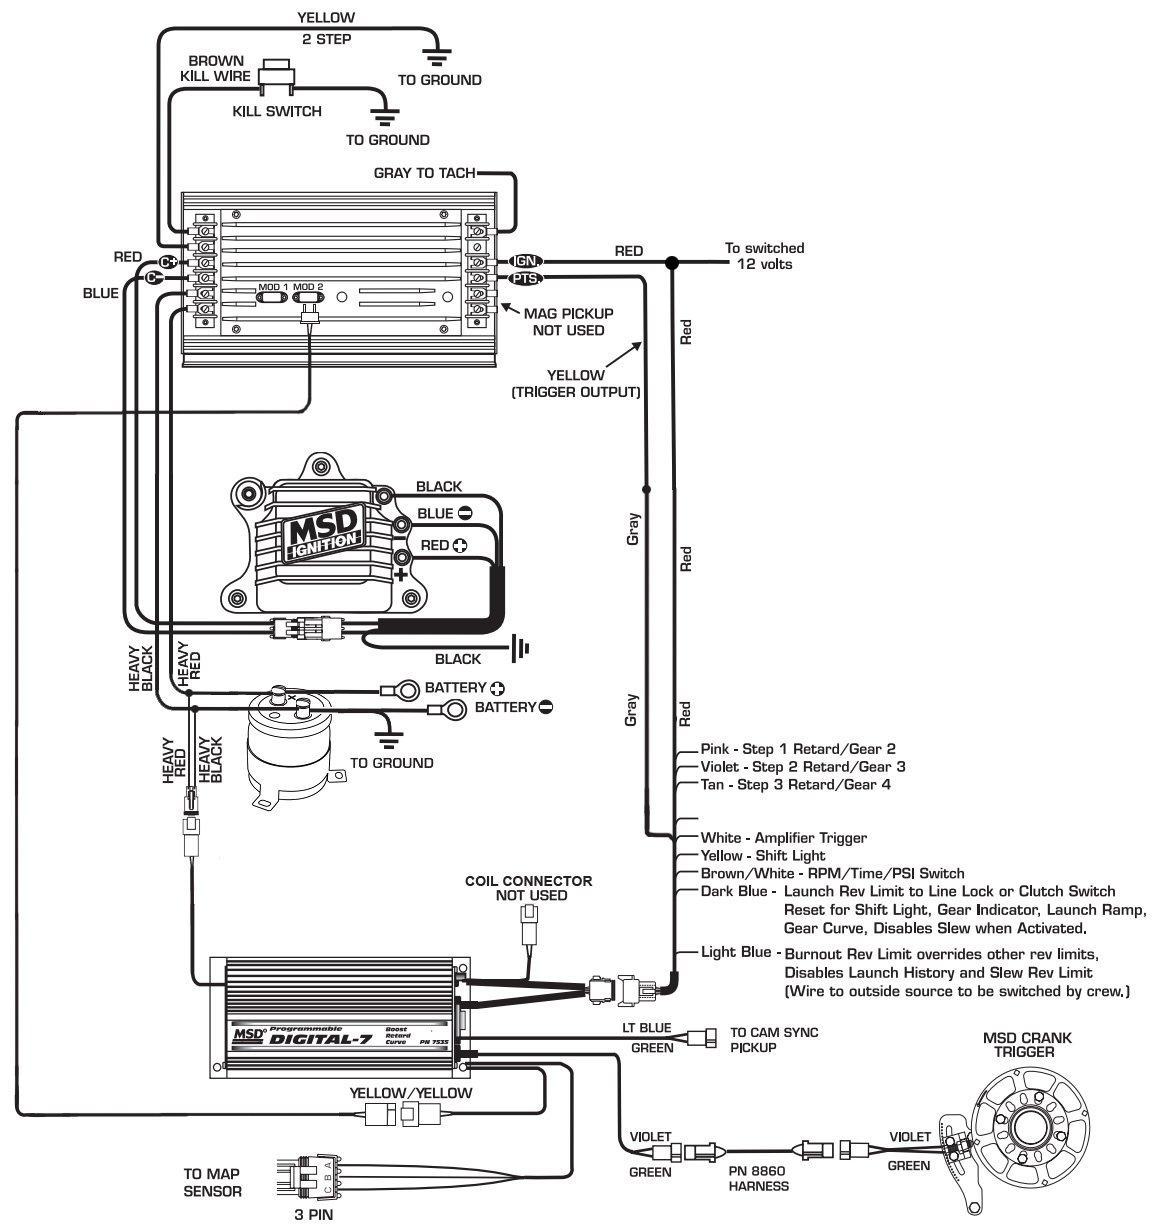 Wiring Diagram For Msd 2 Step - Quick Start Guide Of Wiring Diagram on msd 6 wiring diagrams, msd two-step launch control, msd 8739 wiring-diagram, msd 7al 2 wiring,